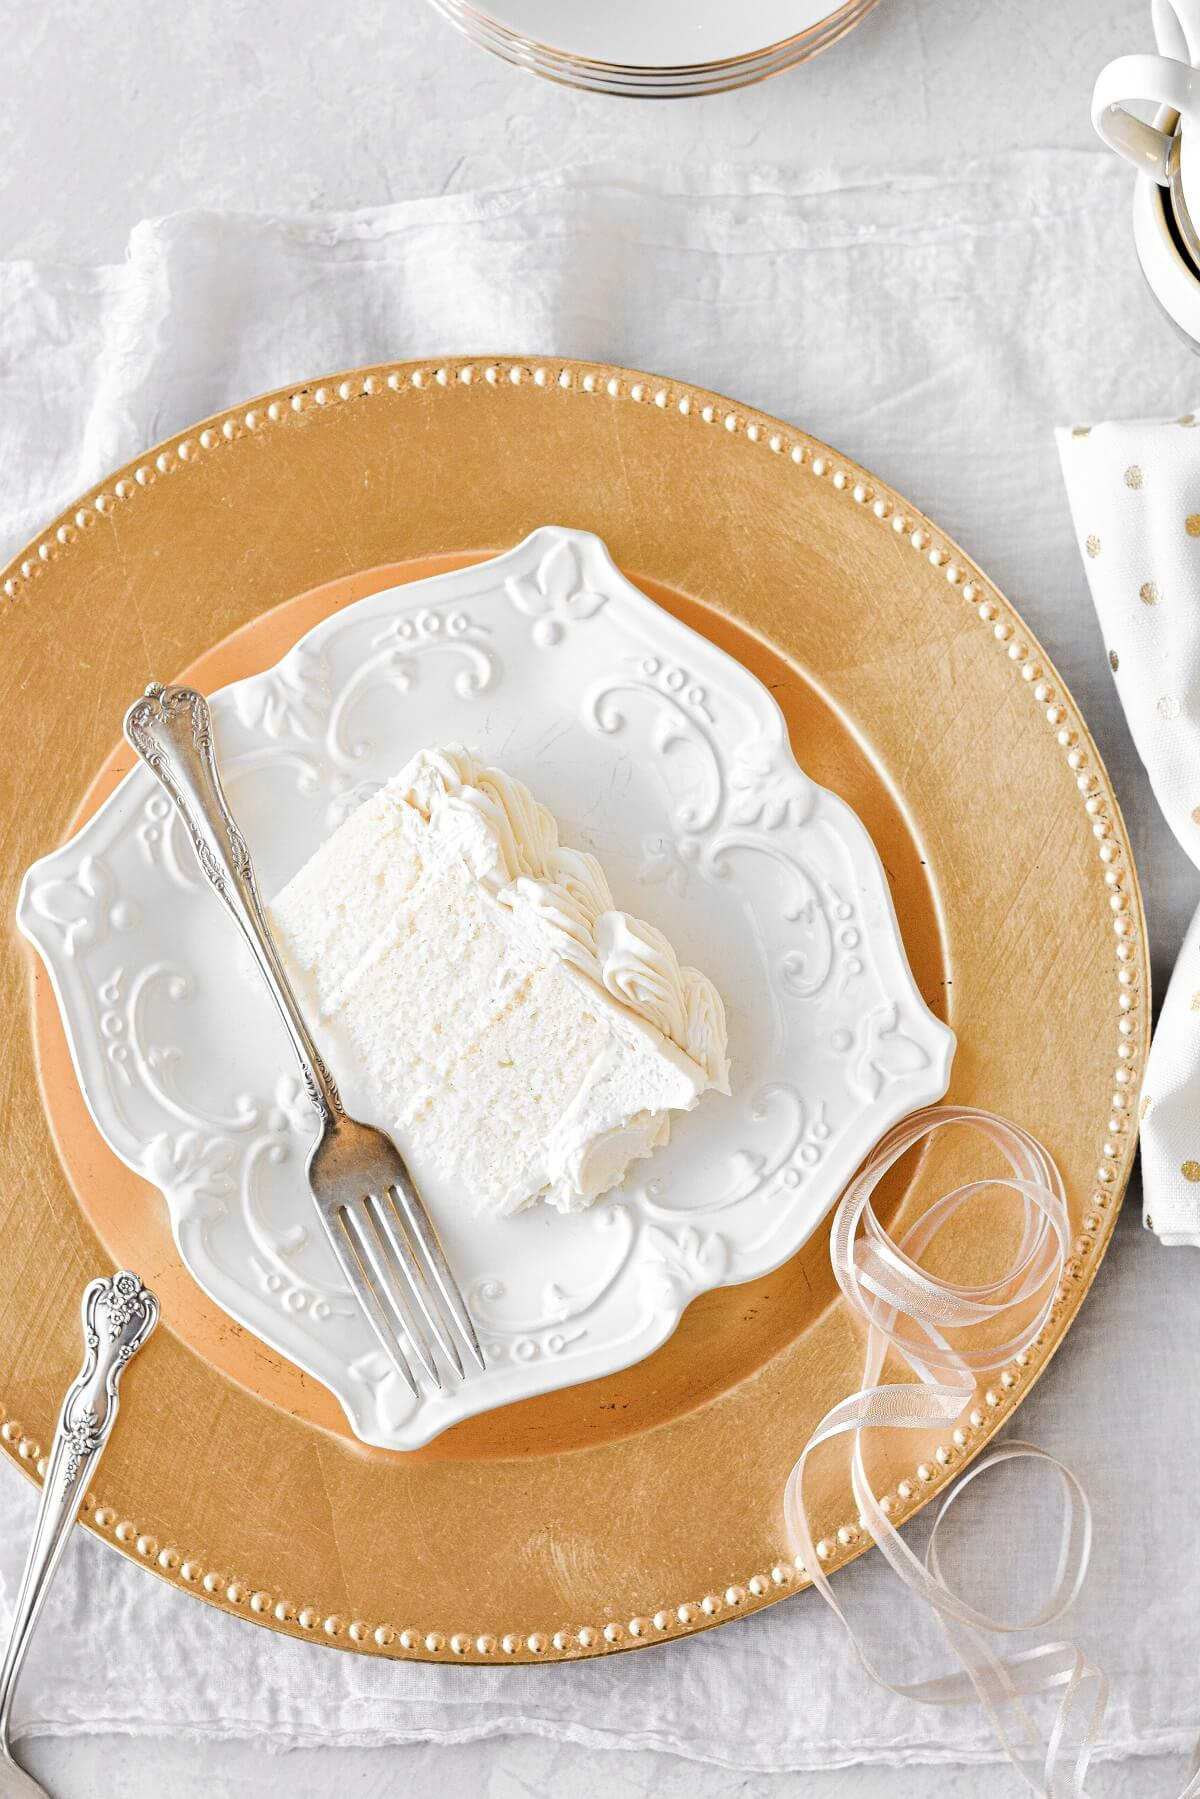 A slice of white velvet cake on a gold charger plate.